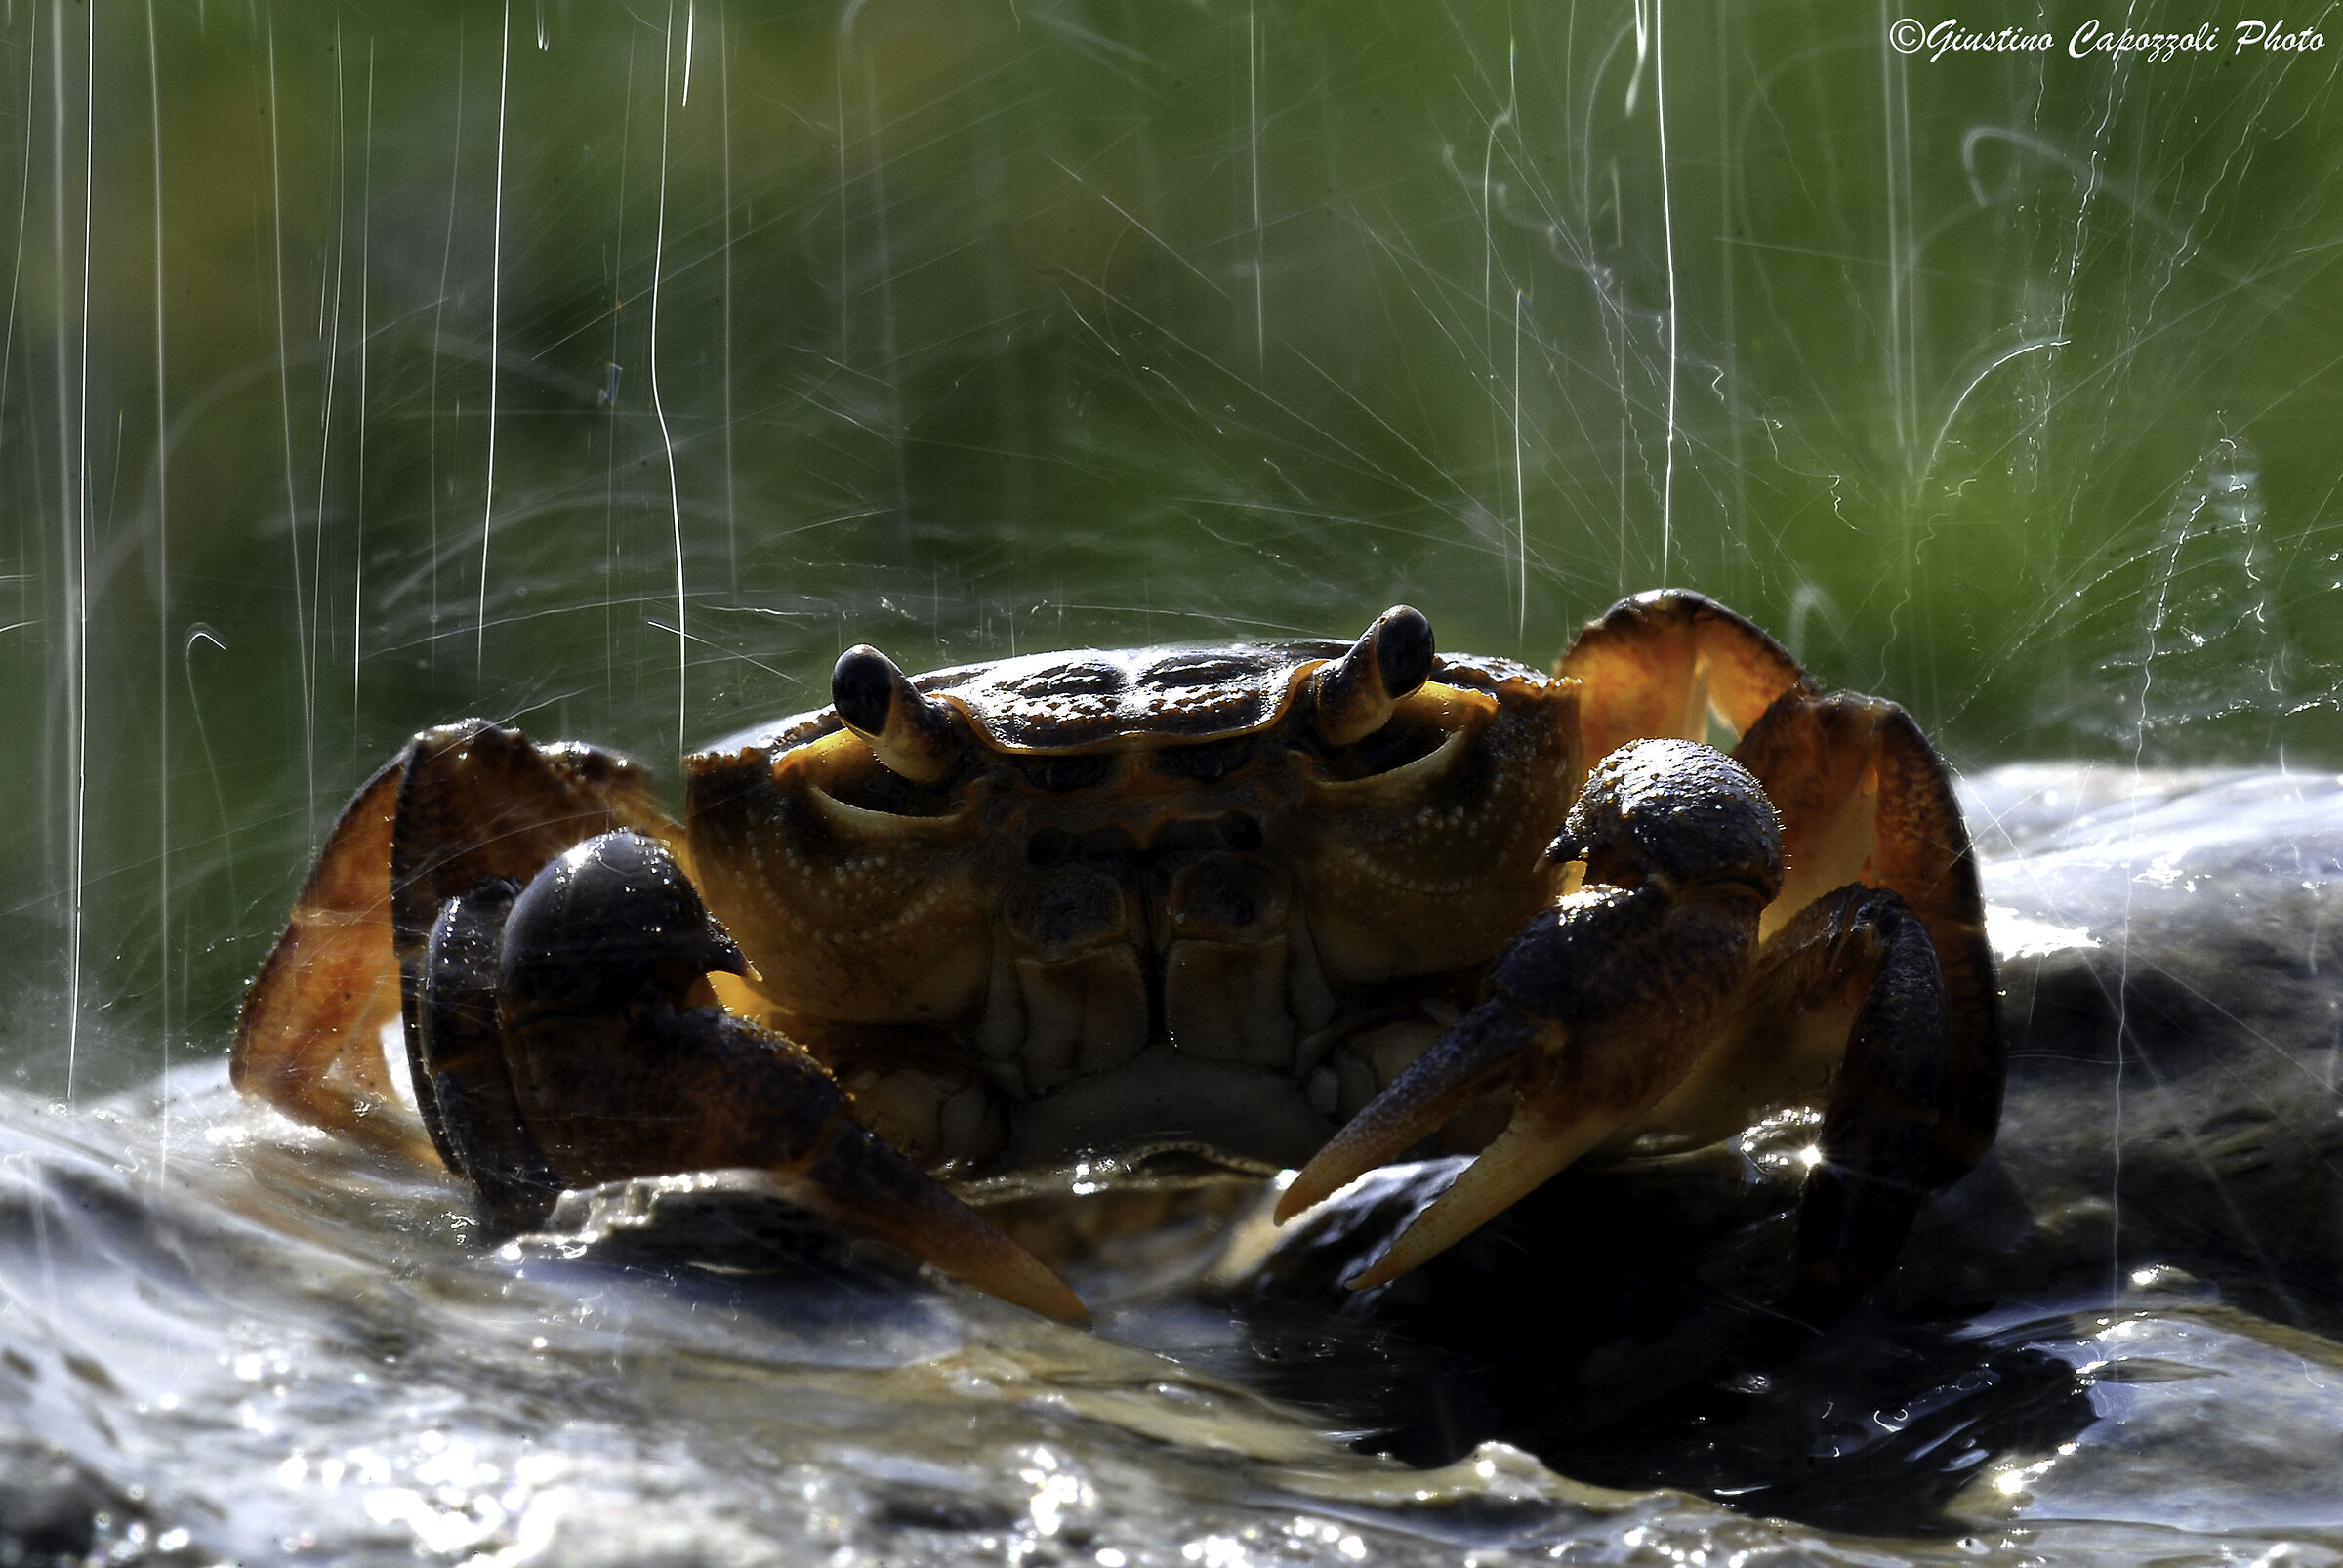 the river crab...